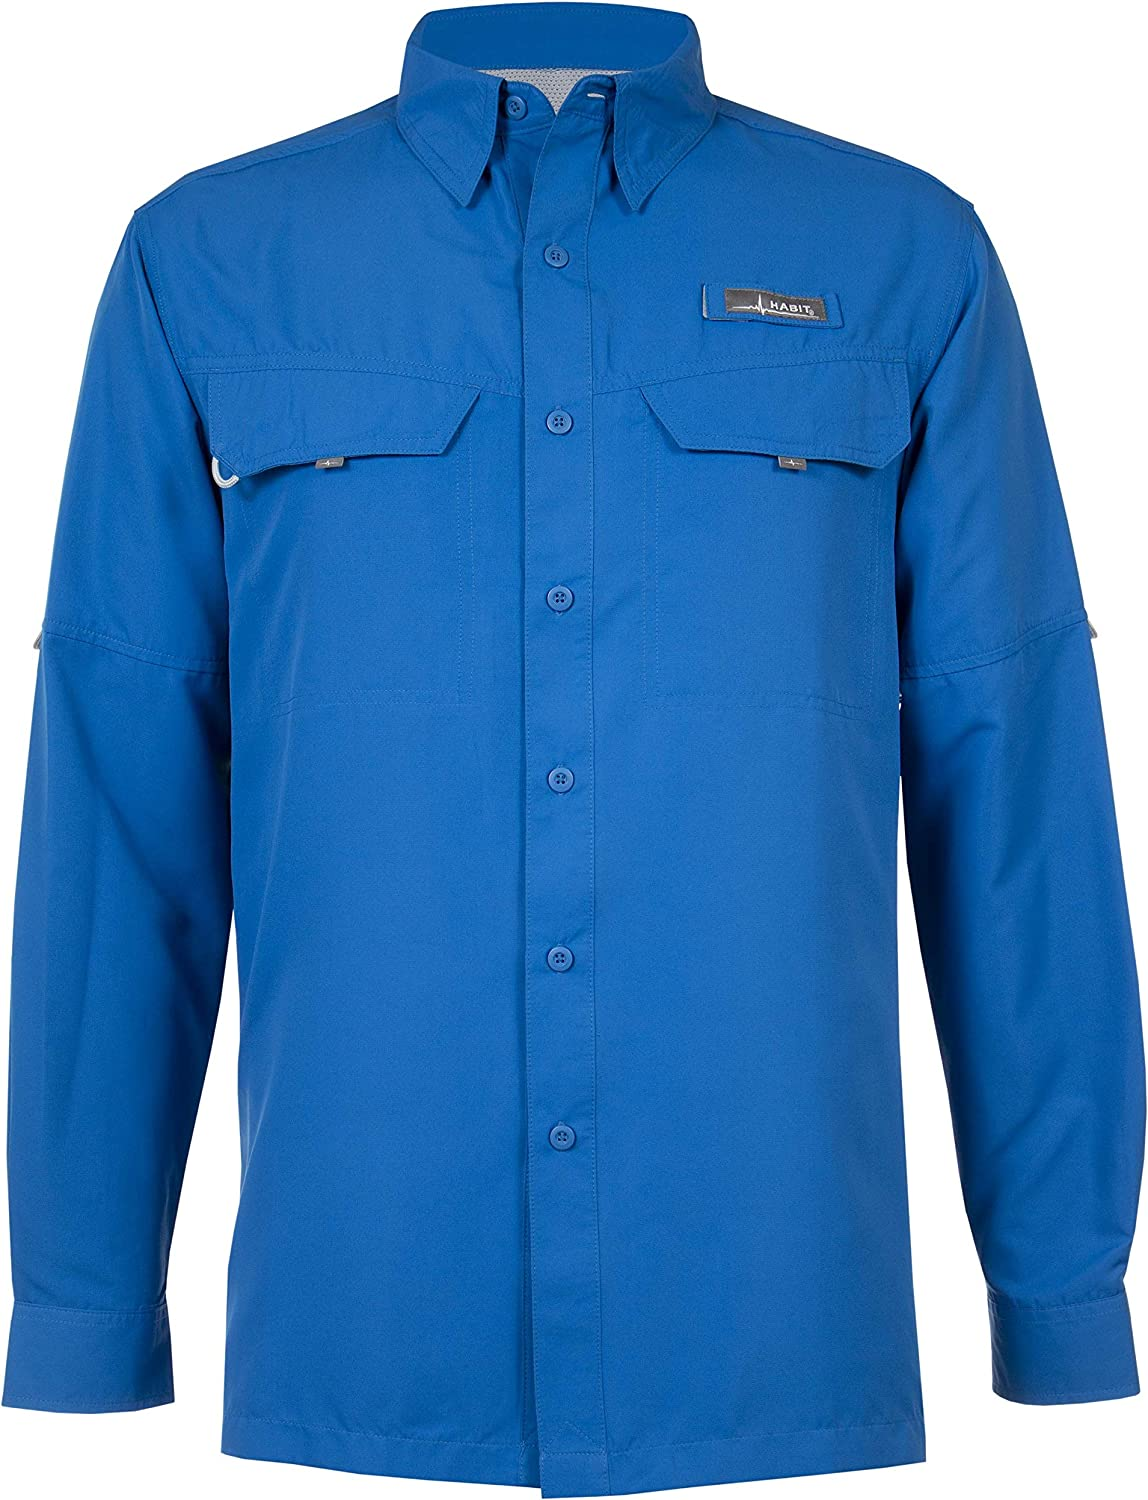 HABIT Mens Ts1156 Long Sleeve River Guide Fishing Shirt